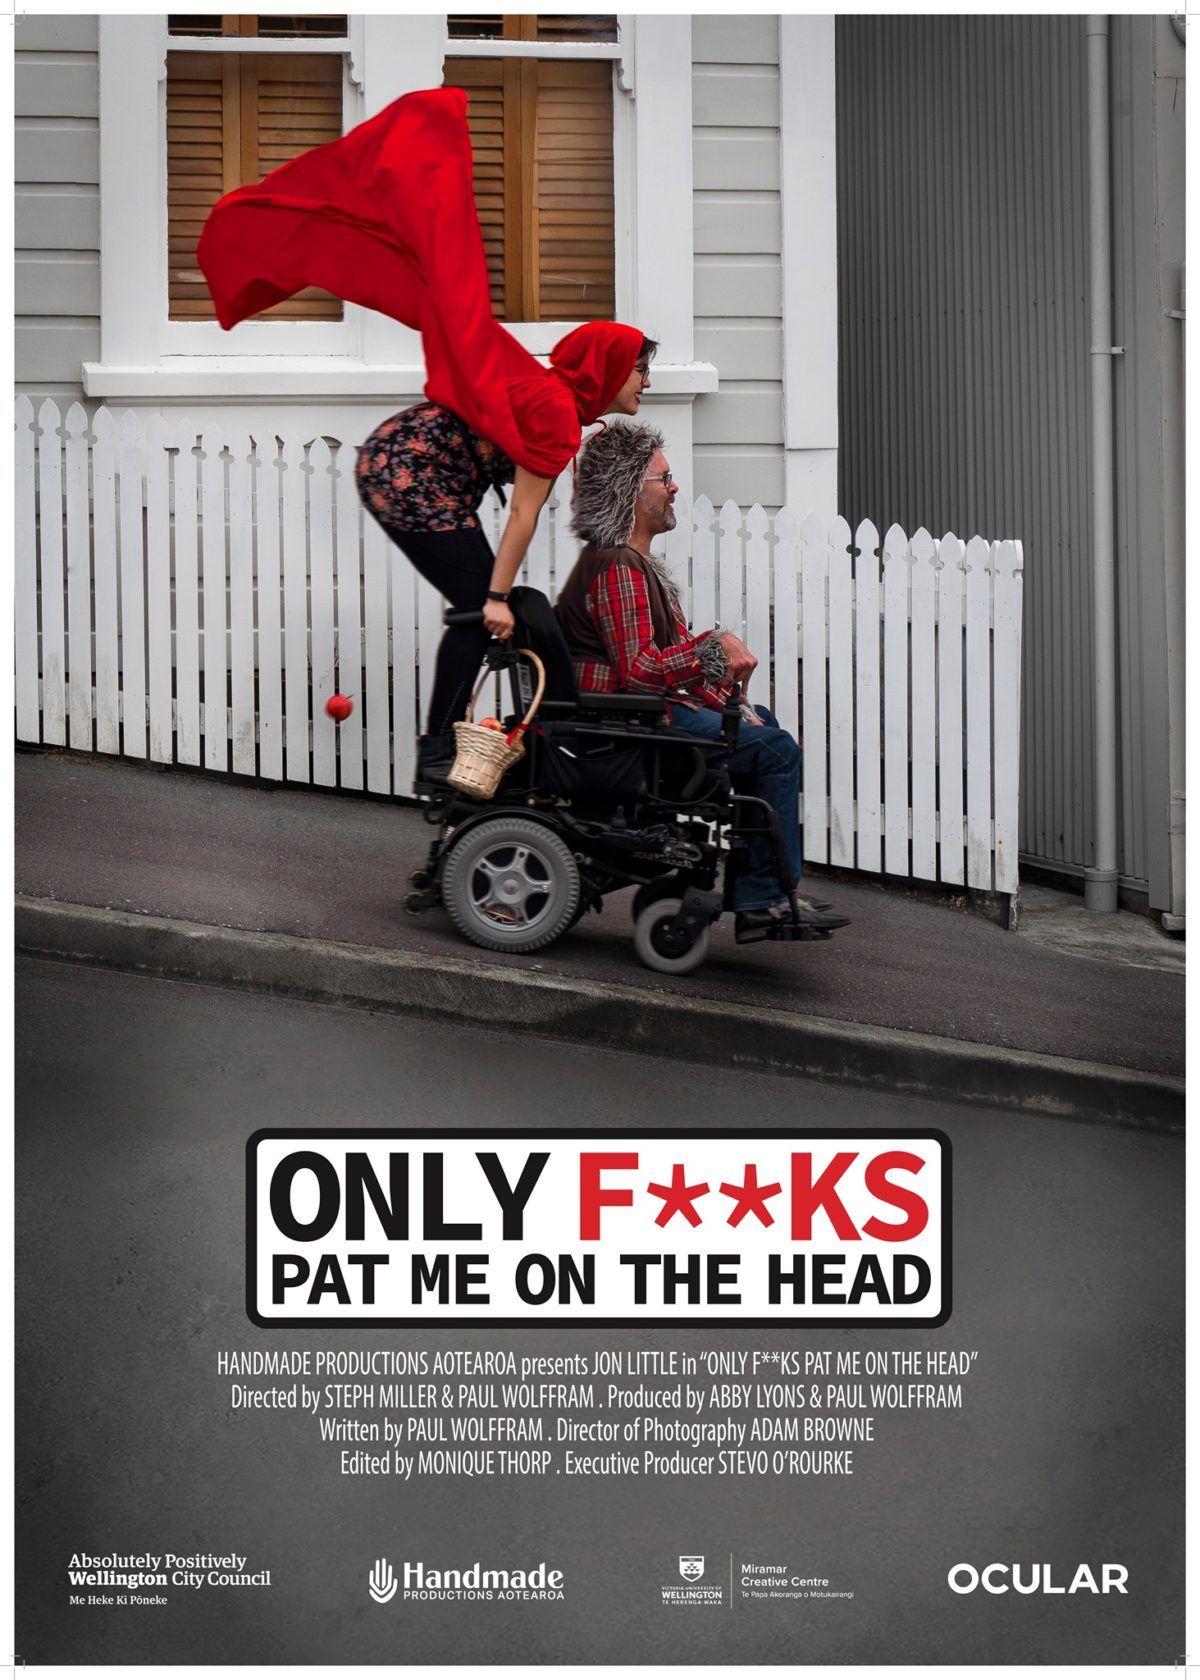 Movie poster showing a man and woman in fancy dress riding a wheelchair down a steep street.